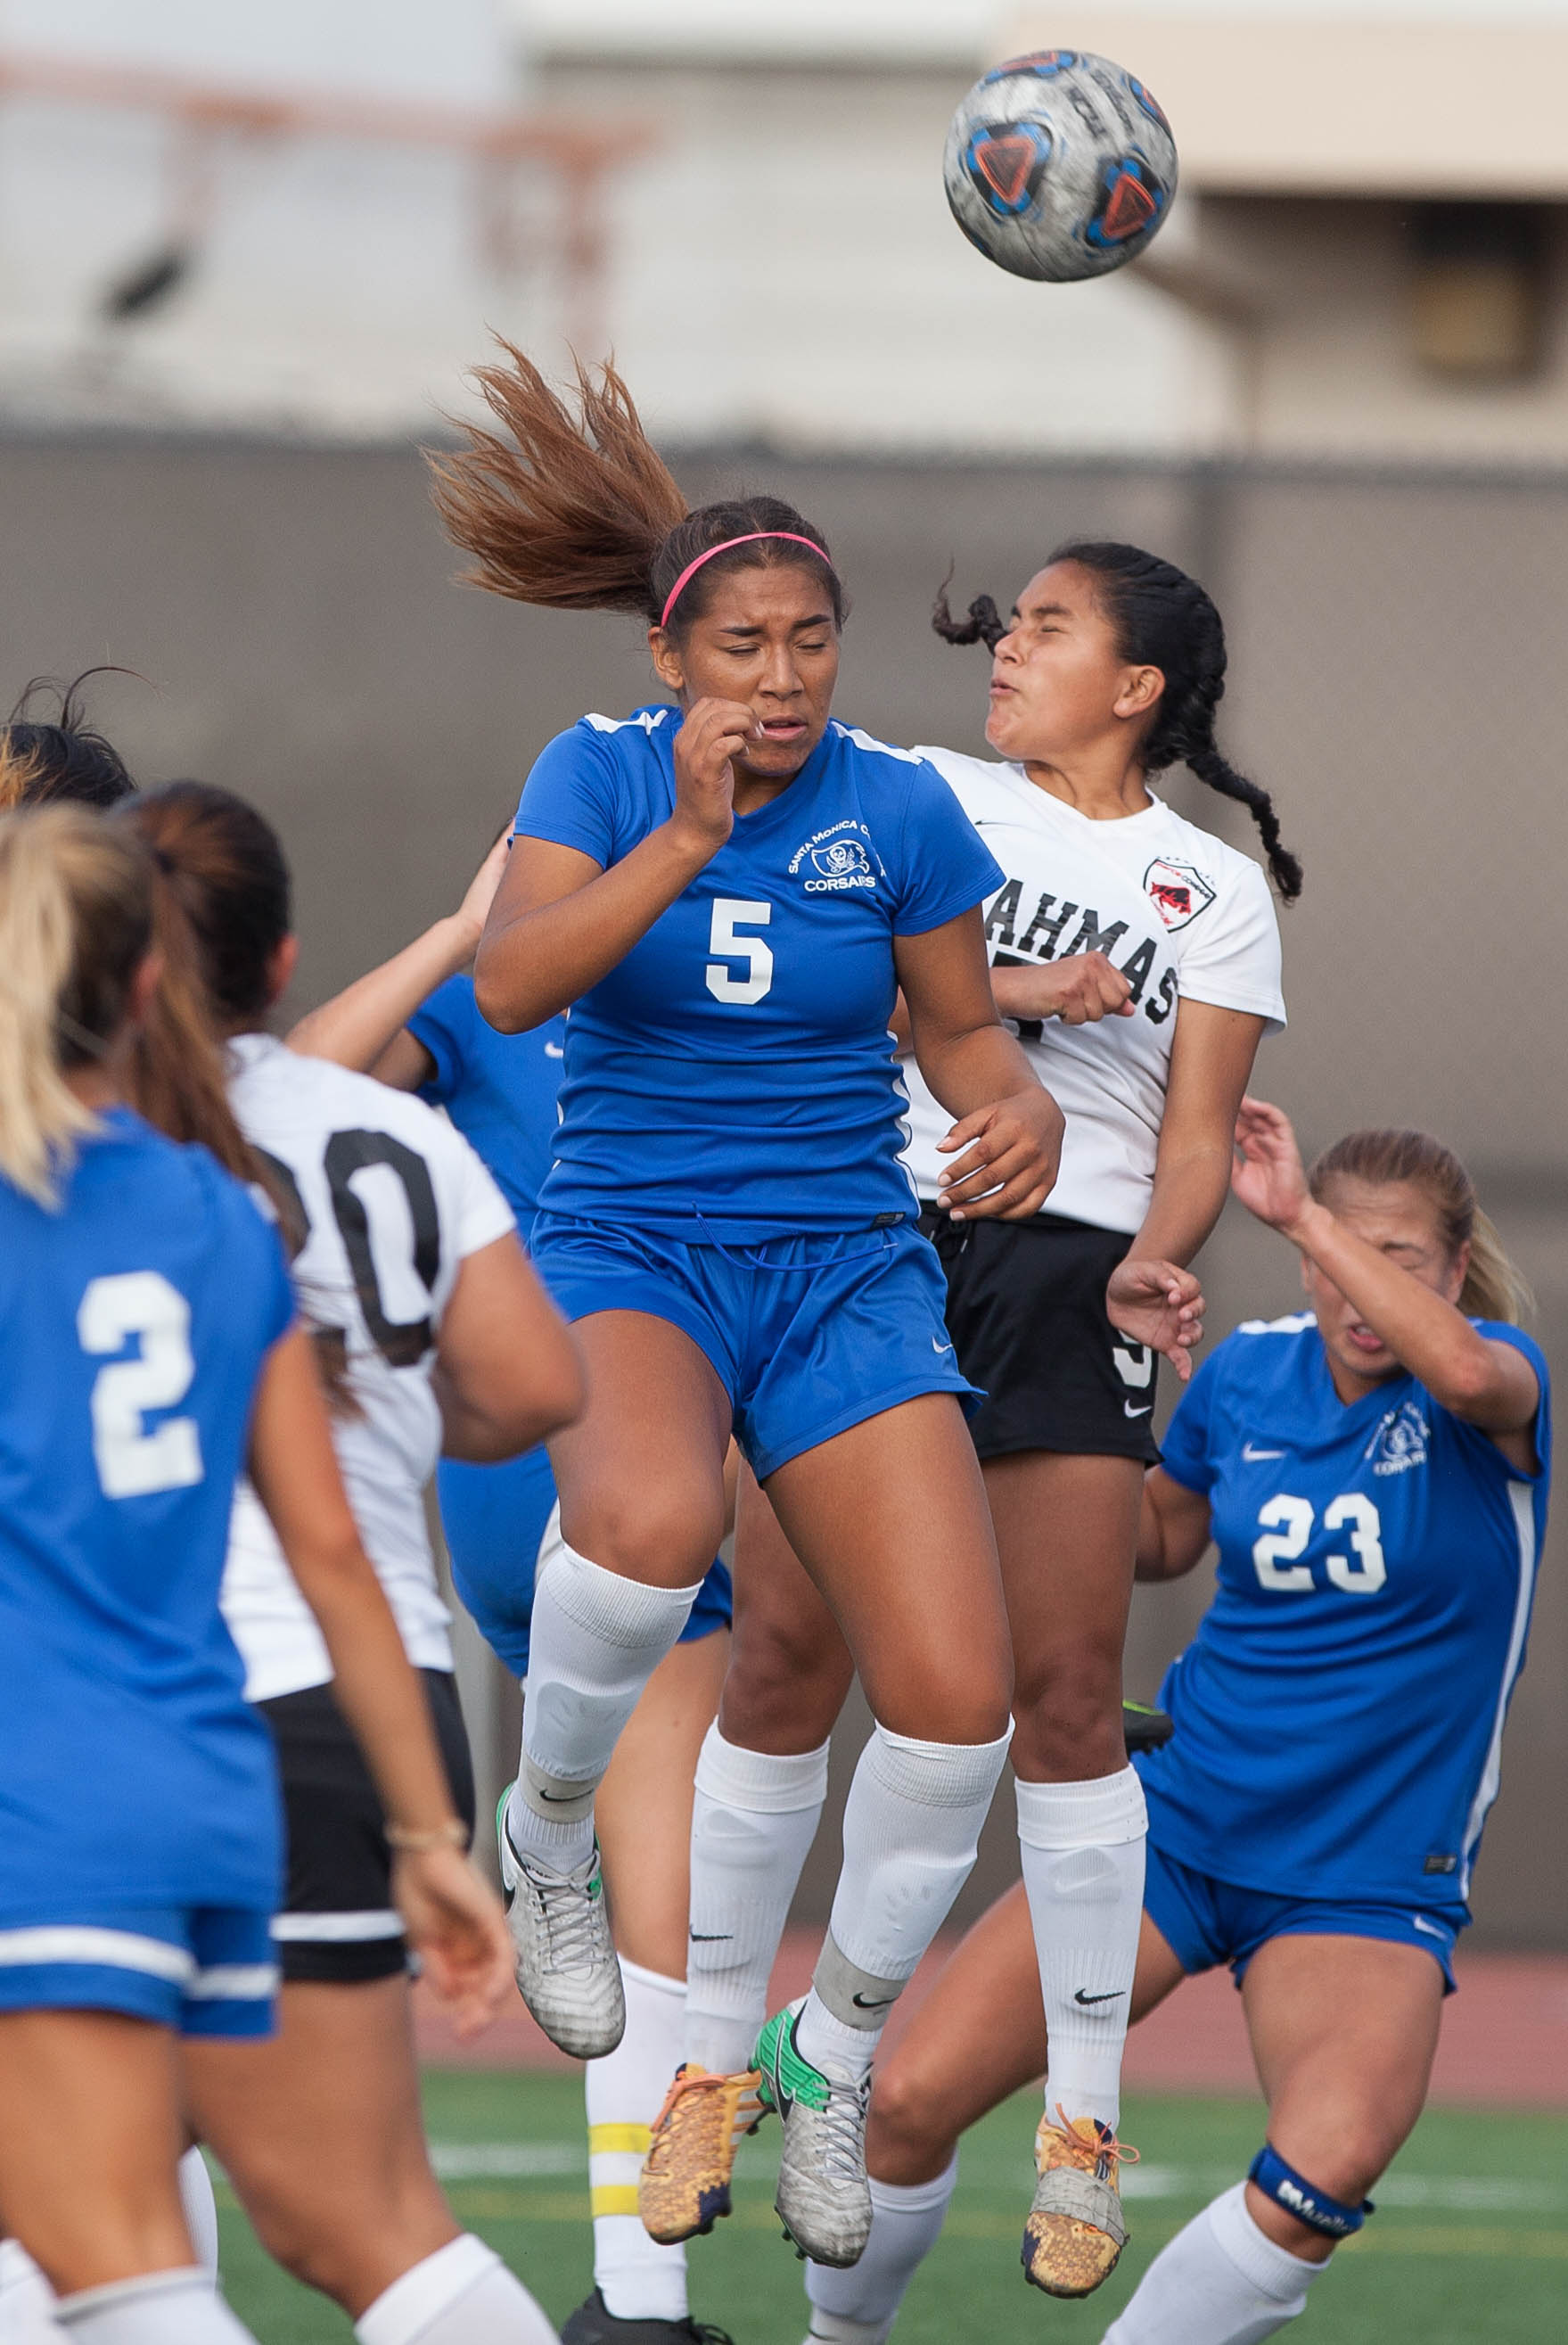 Santa Monica College Corsair Joscelyn Diaz (5)  headbutts the ball during the the game against the Pierce College Brahmas at SMC on Tuesday, October 31, 2017 in Santa Monica, Calif. Corsairs win against the Brahmas 1-0. (Elena Rybina)